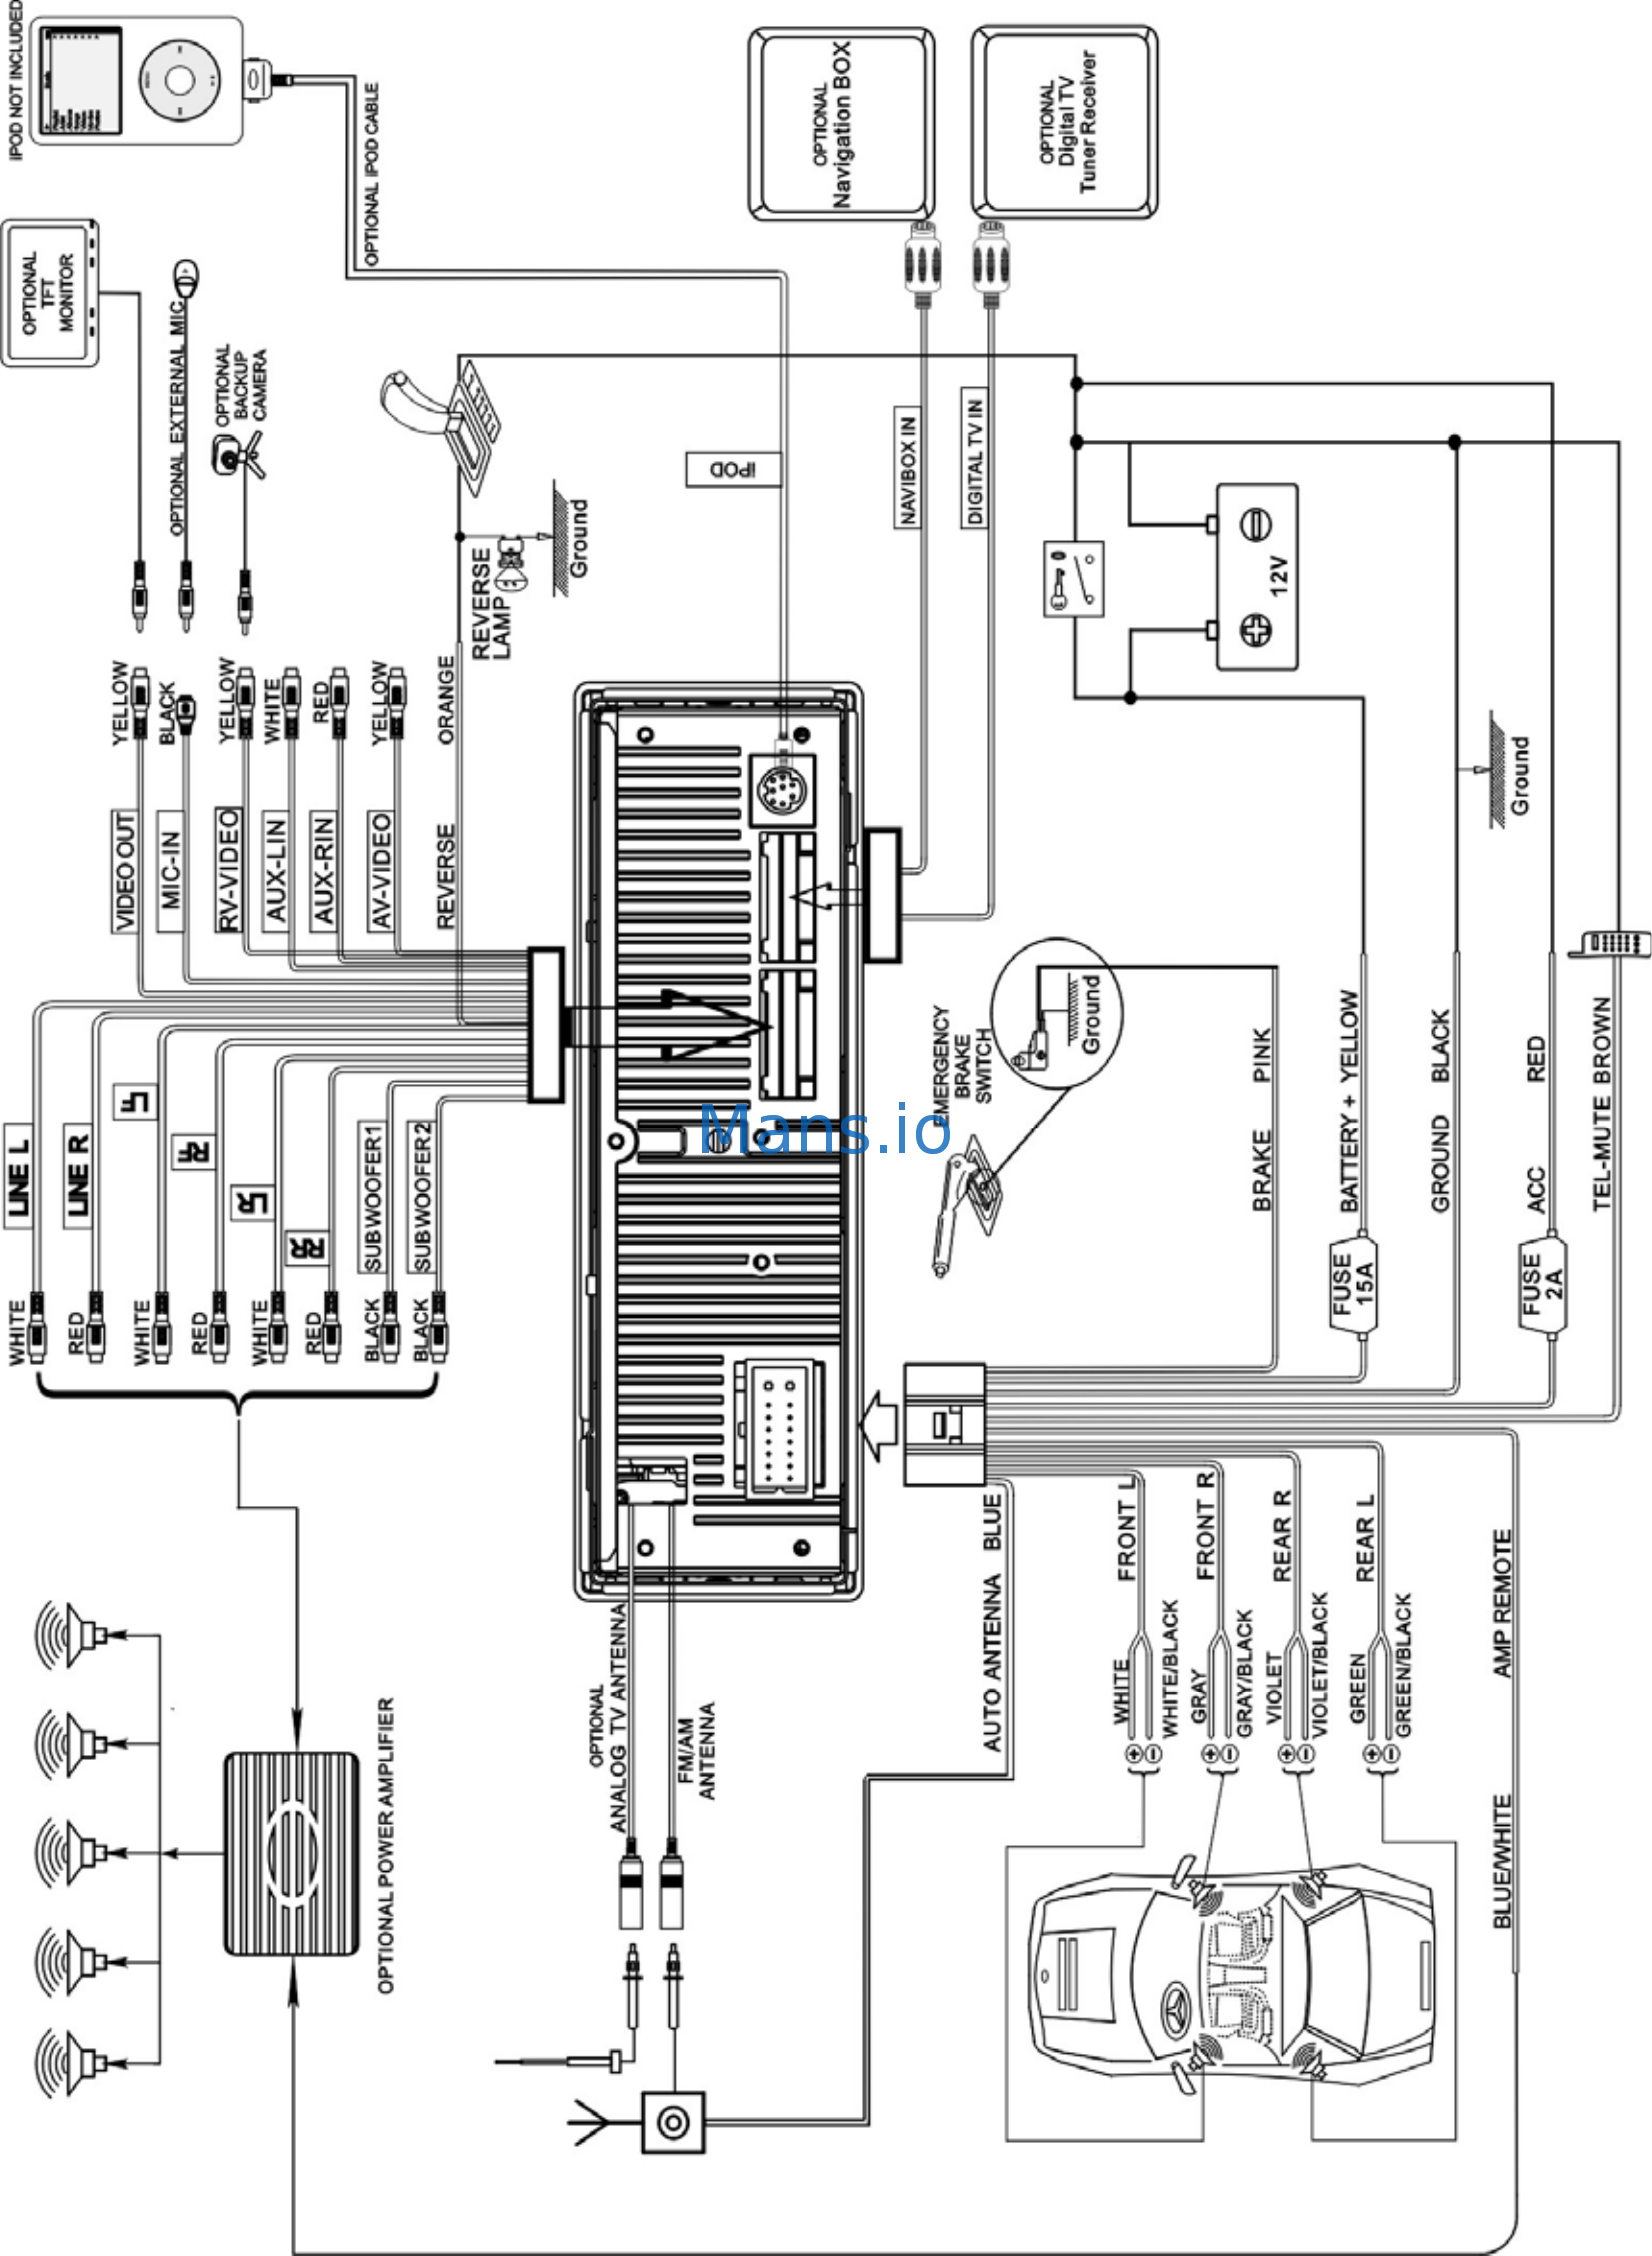 Wiring Diagram Further Power Antenna Wiring Diagram On Hyundai Power